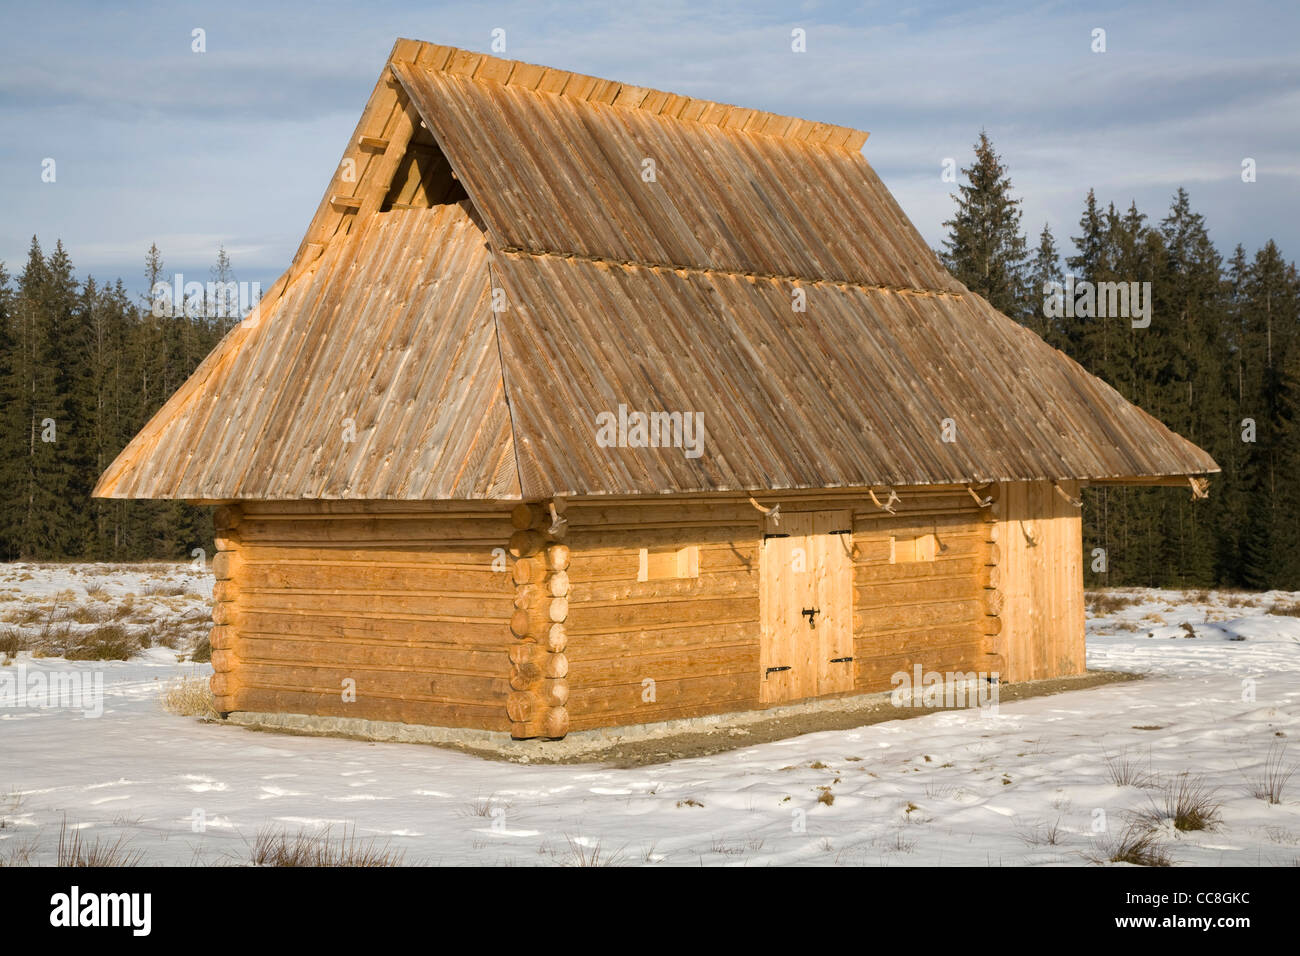 Traditional Stables for sheep, Tatra Mountains, Poland - Stock Image